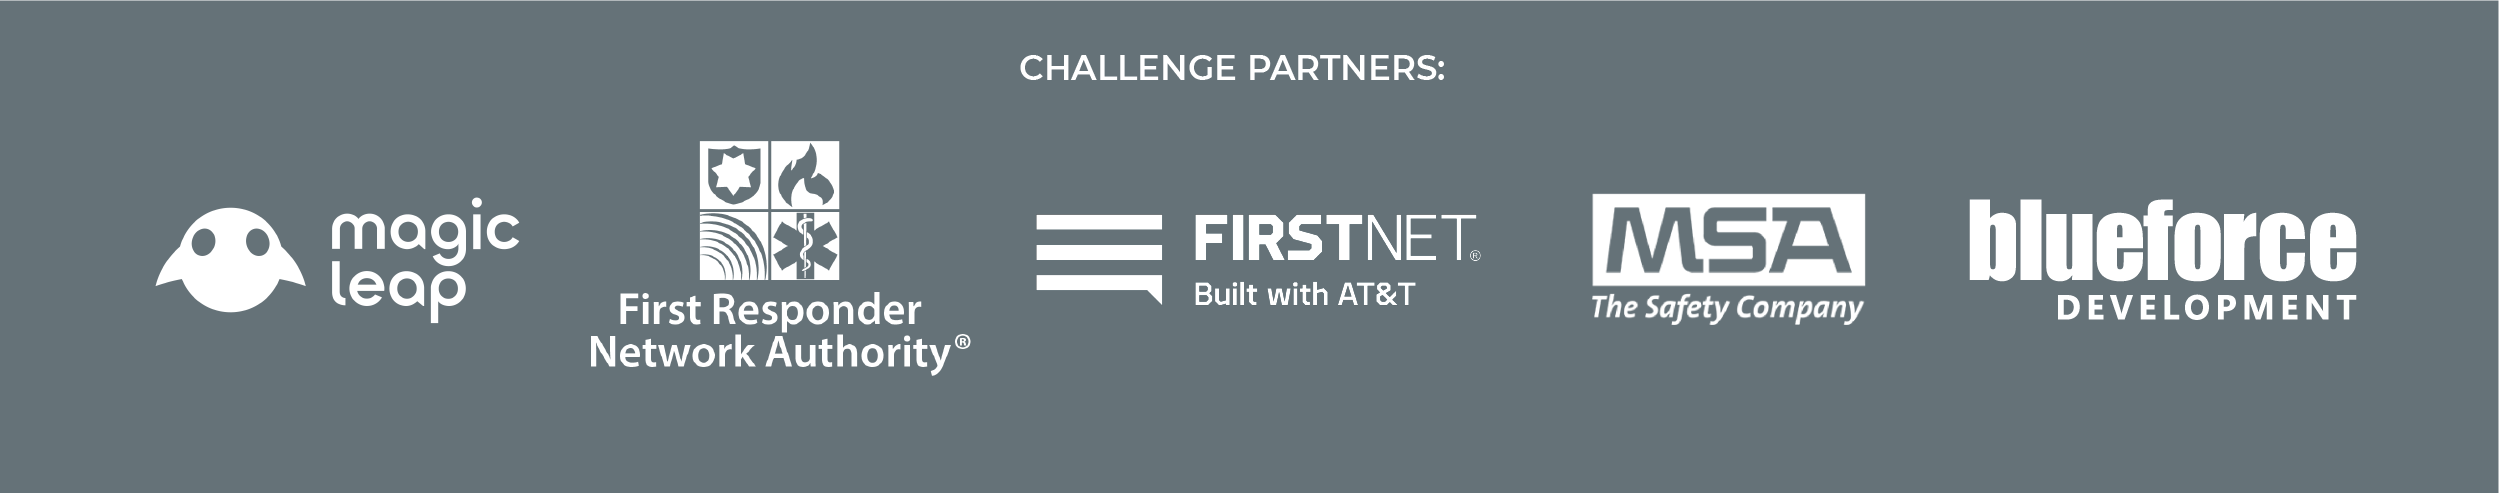 Image for PSCR CHARIoT Challenge partners FirstNet, FirstNet by AT&T, MSA Safety, BlueForce, and Magic Leap